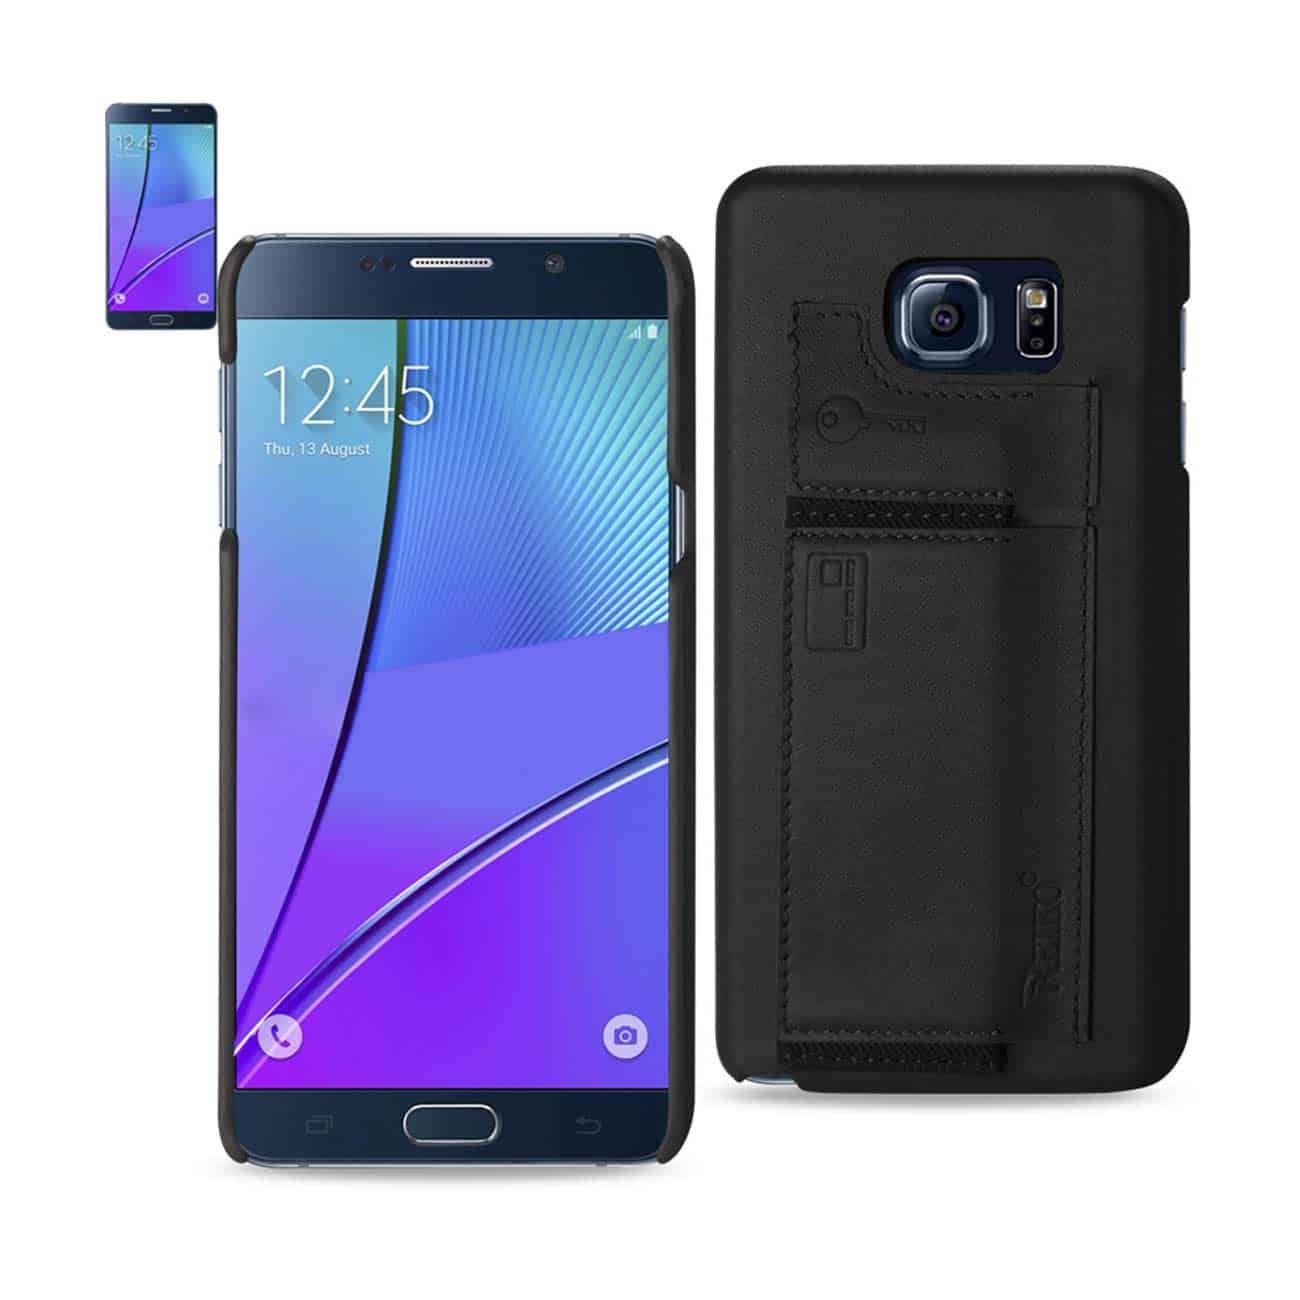 SAMSUNG GALAXY NOTE 5 RFID GENUINE LEATHER CASE PROTECTION AND KEY HOLDER IN BLACK